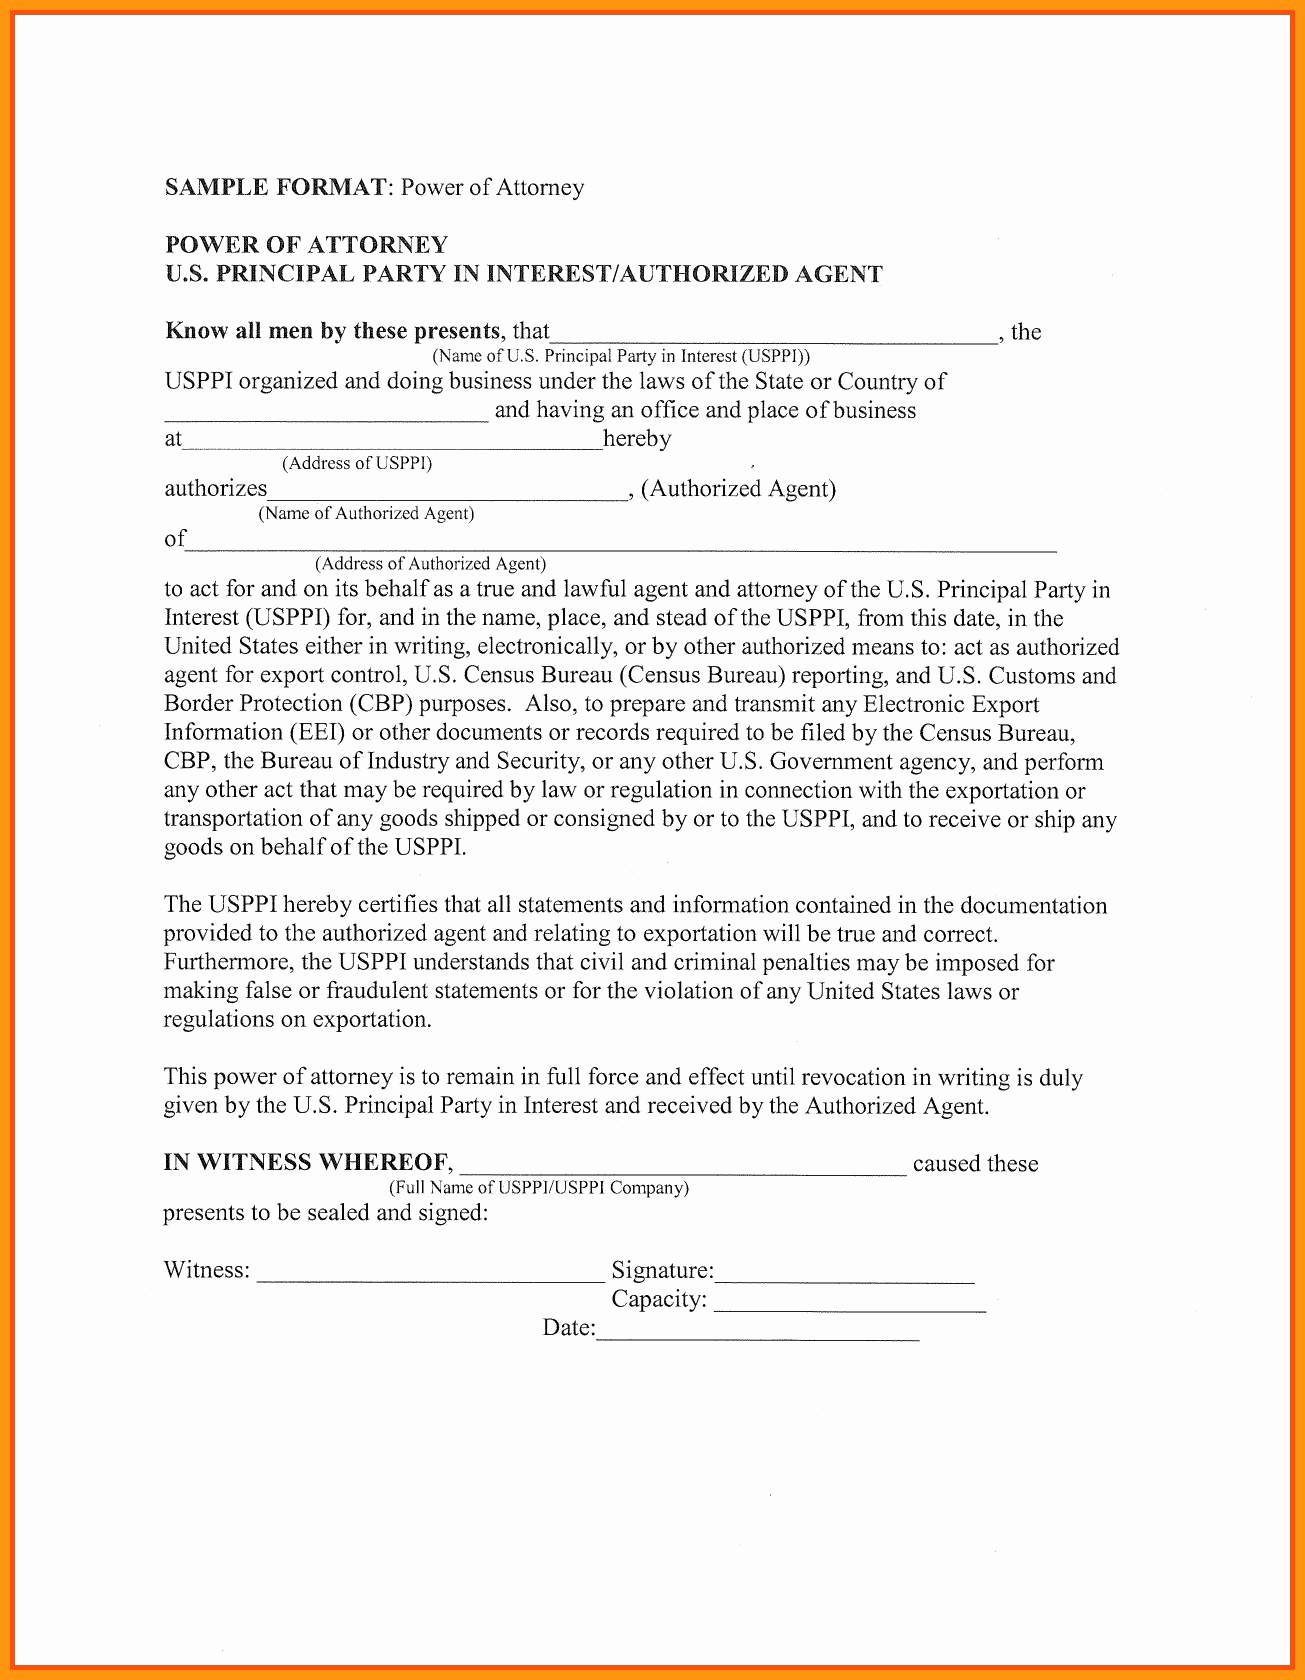 Mississippi Power Of attorney Awesome Power attorney form Mississippi Awesome Mississippi Power